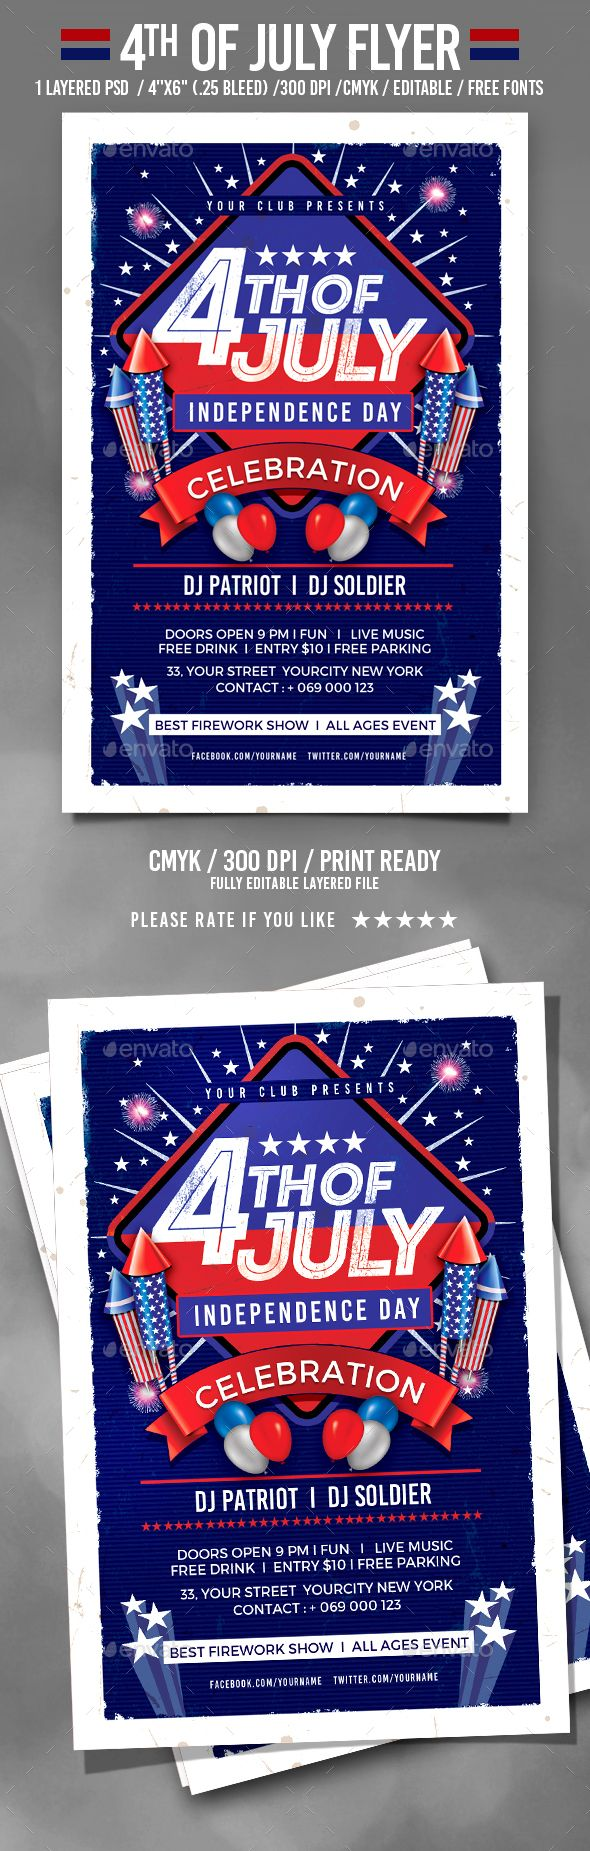 pin by best flyer designs on 4th of july flyer templates pinterest